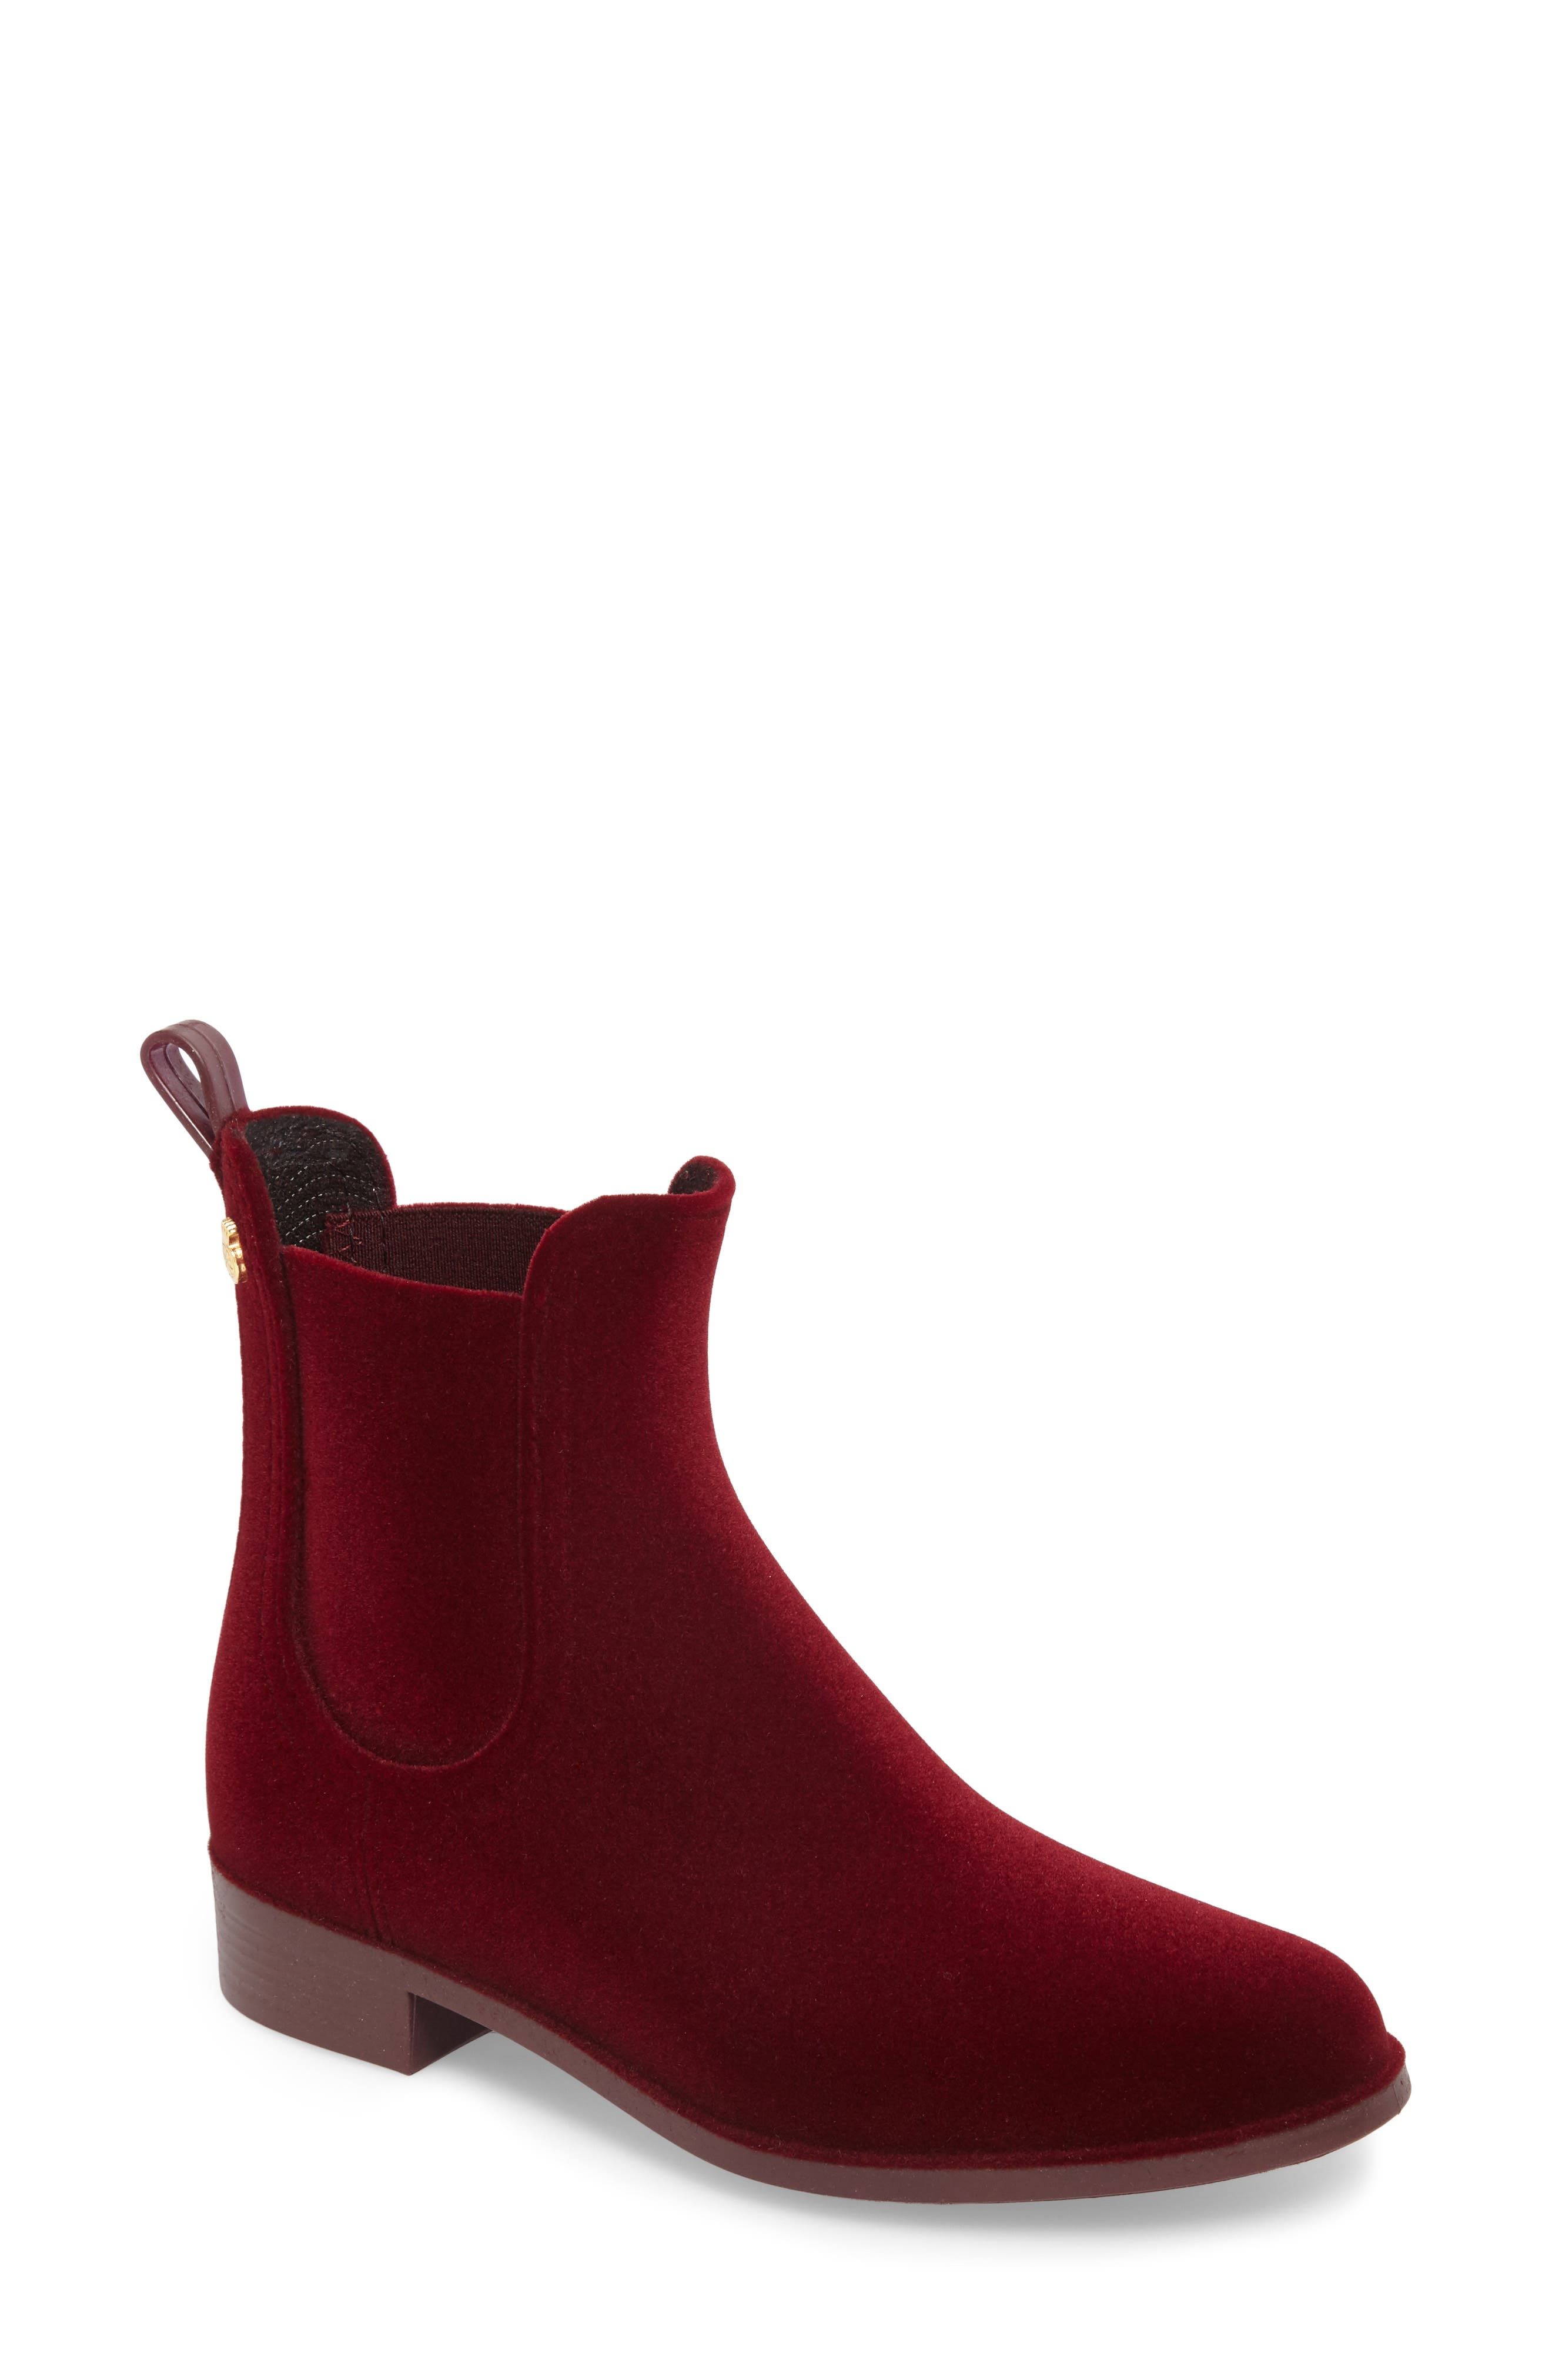 Alternate Image 1 Selected - Lemon Jelly Velvety Waterproof Chelsea Bootie (Women)